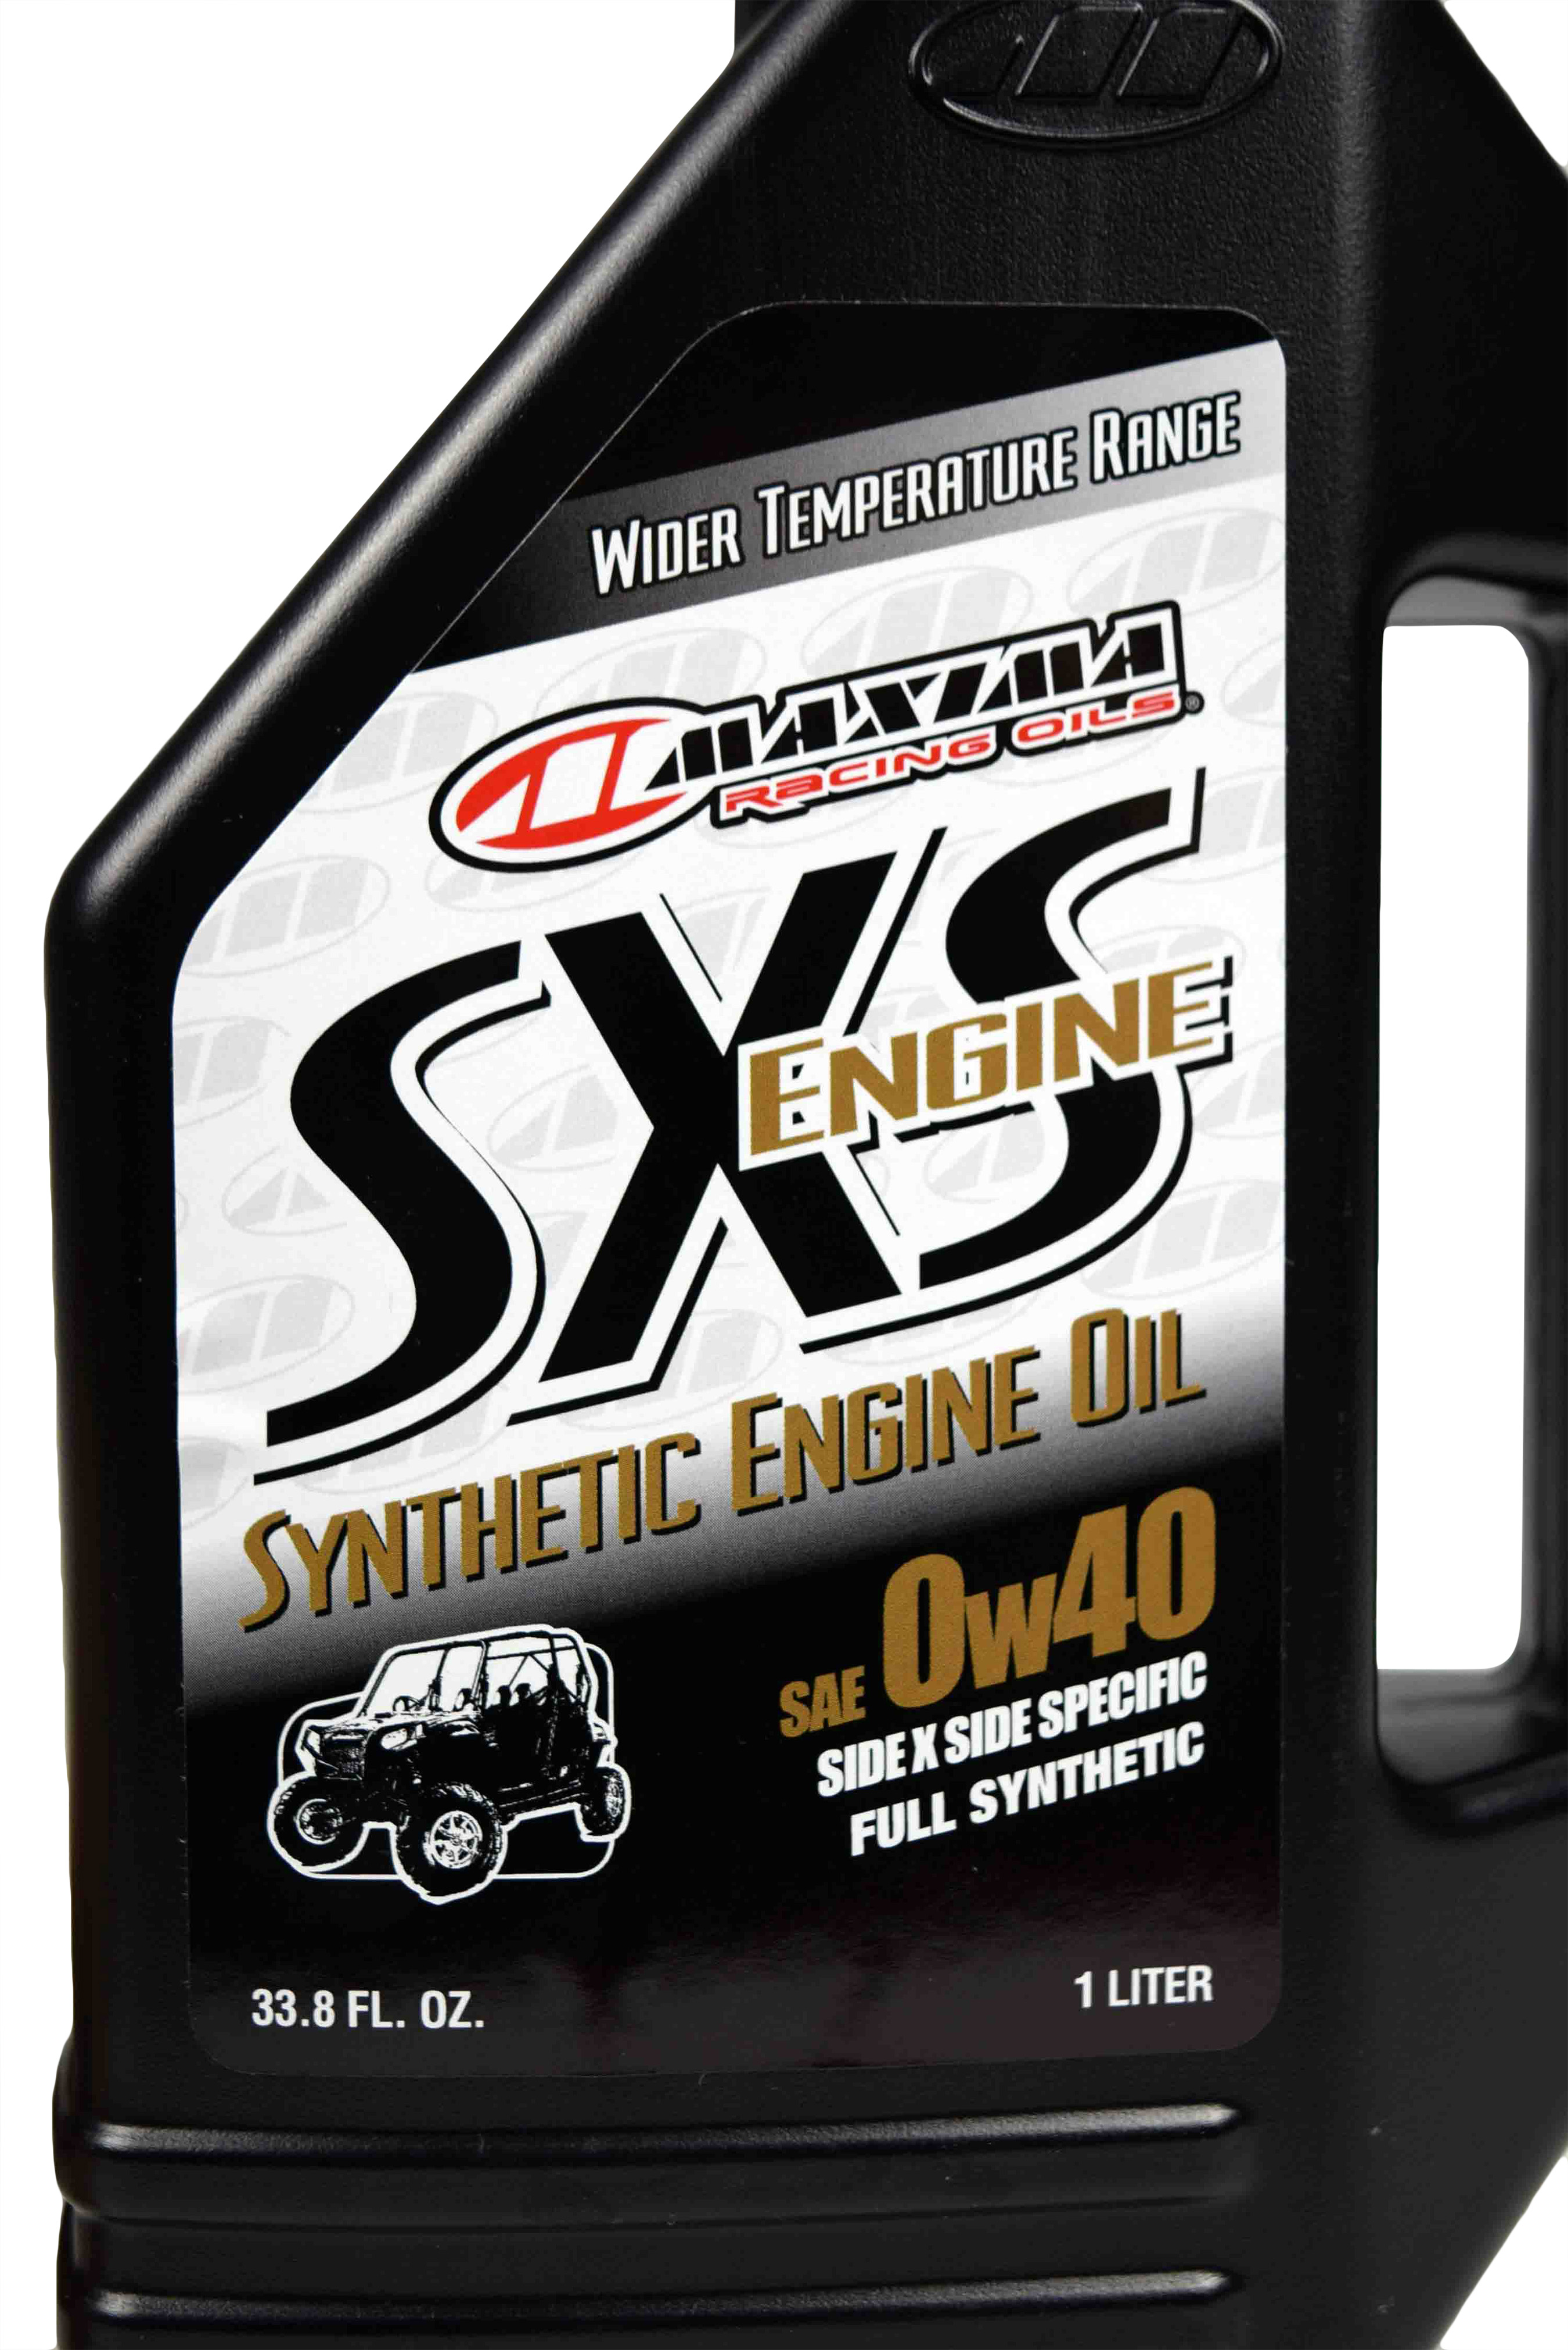 Maxima-Racing-Oils-30-12901-0W-40-Side-By-Side-Engine-Oil-1-Liter-image-4